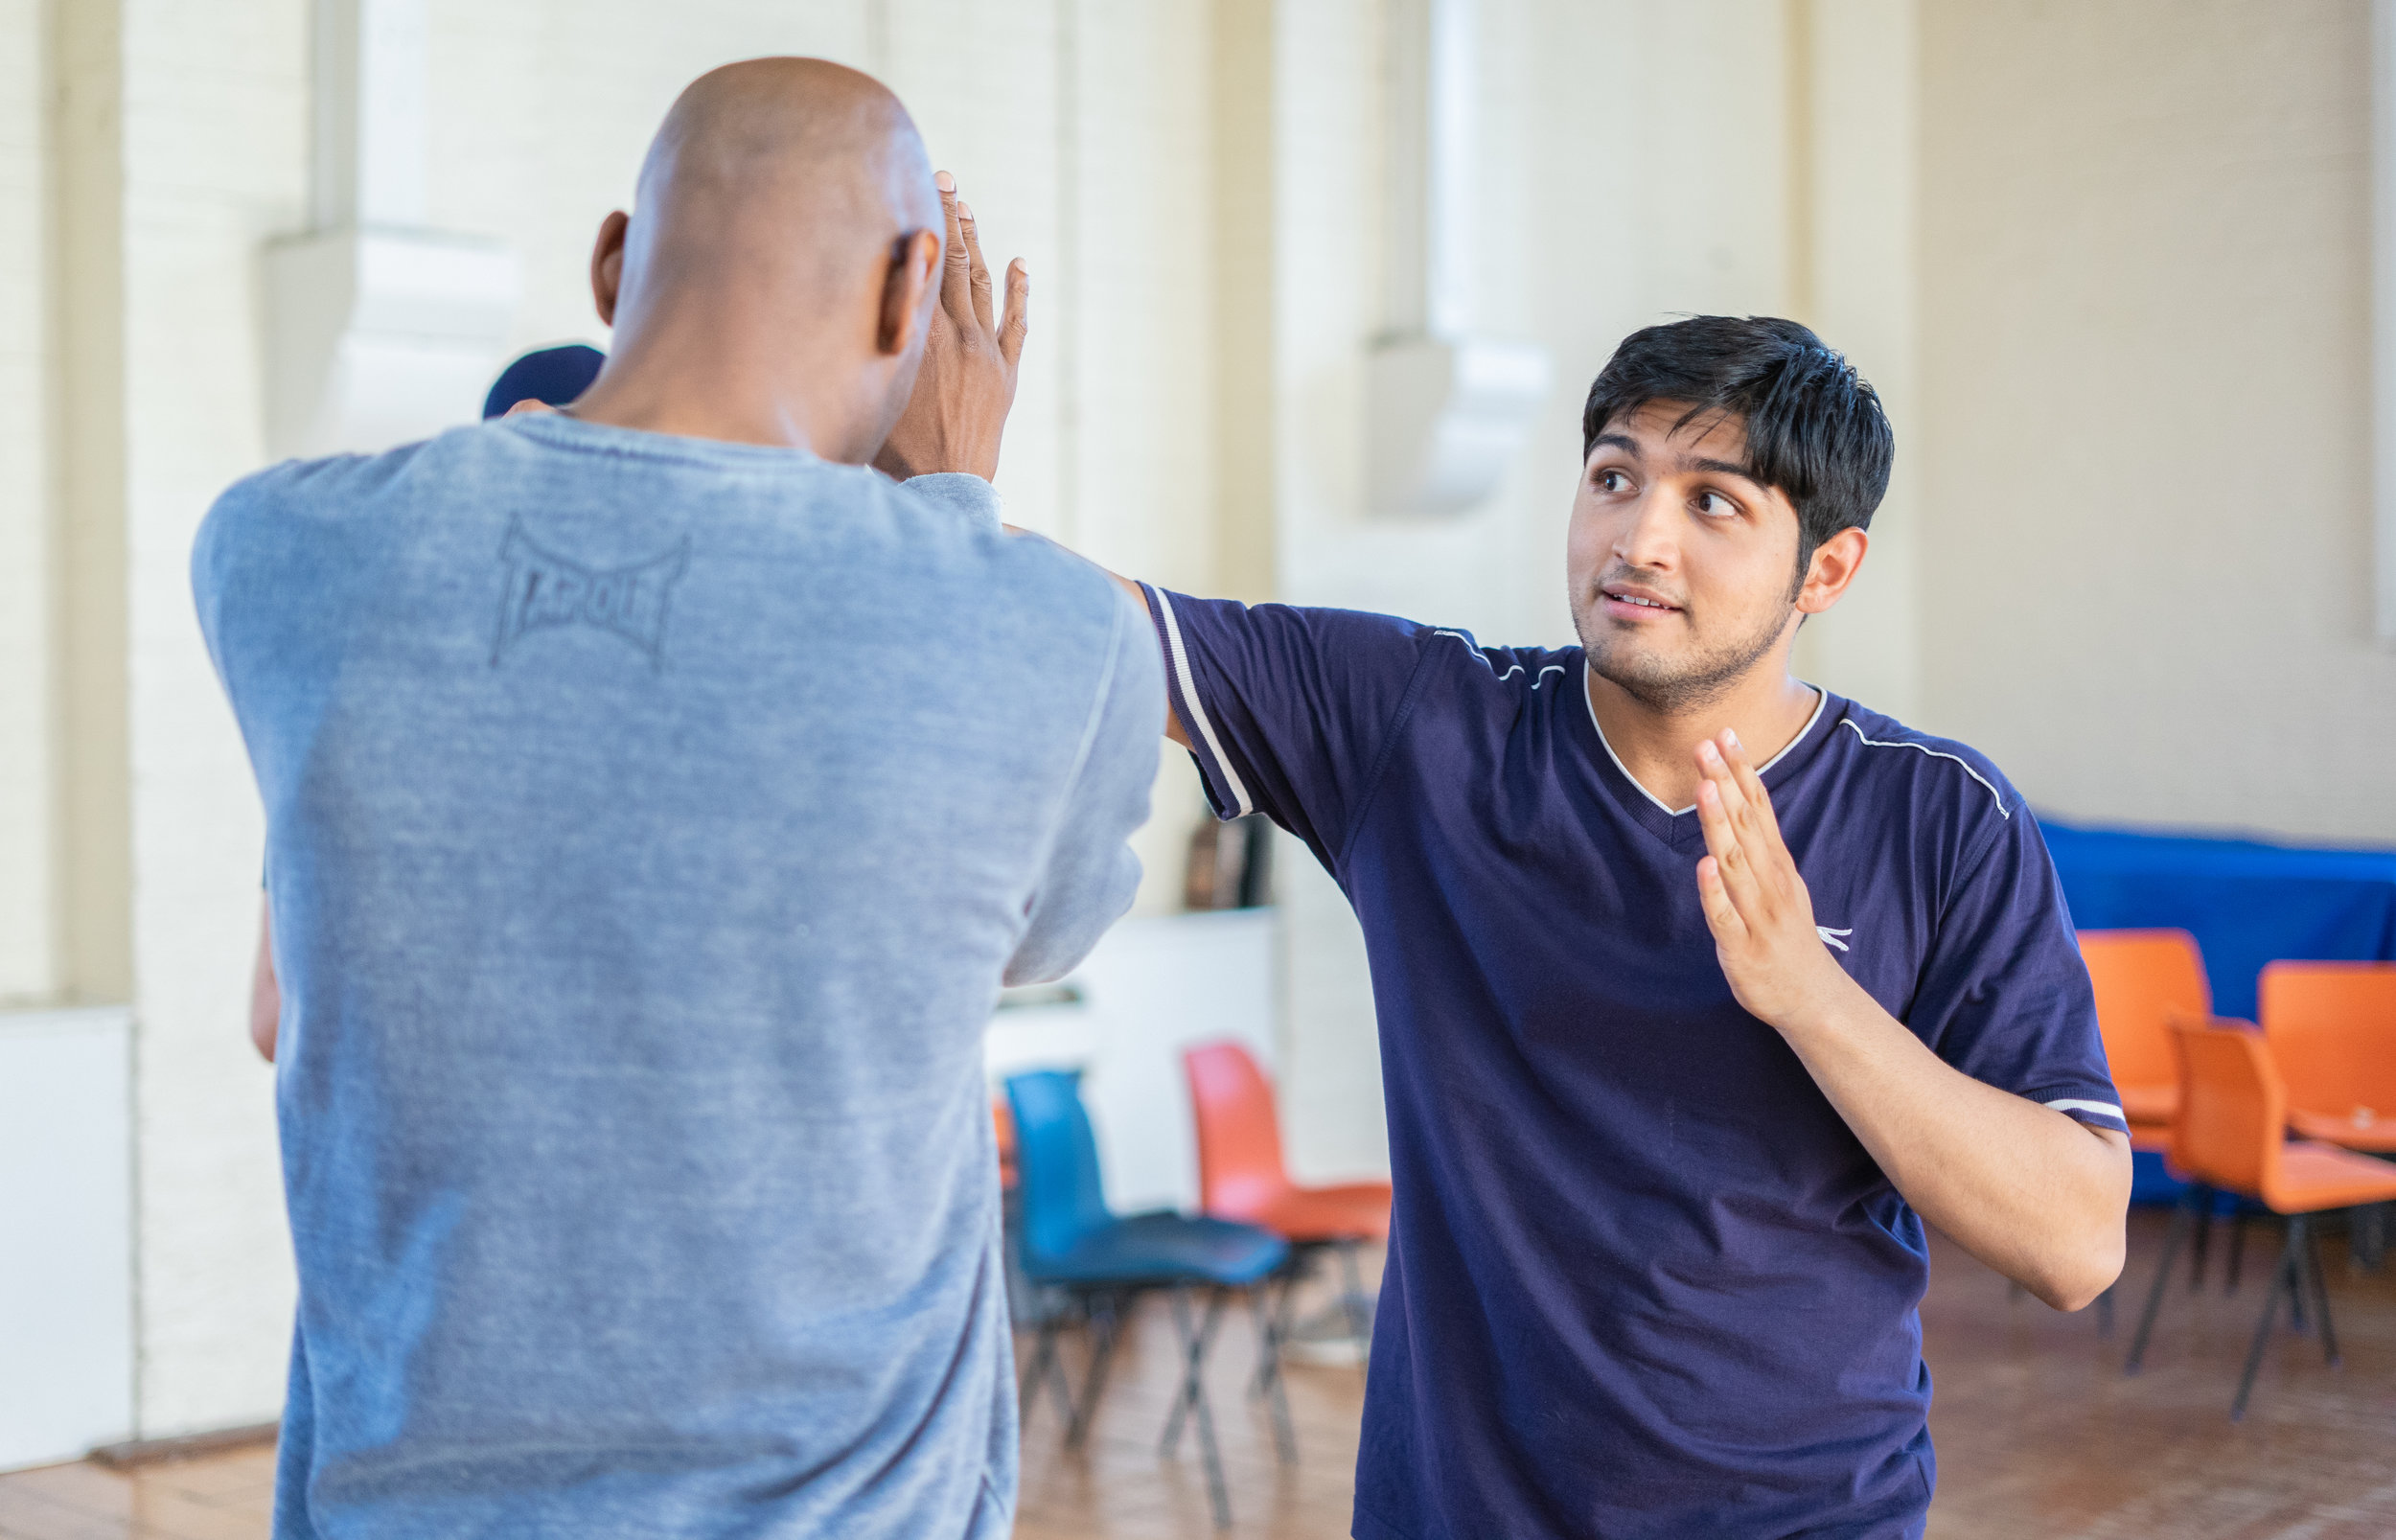 BADC ACCREDITED TRAINING - All BADC Stage Combat Qualifications are valid for three years*Only a deposit is needed to secure your place on any of the BADC courses, made payable by BACs or PayPal.*Unless otherwise stated, all courses are suitable only for adults aged 18+